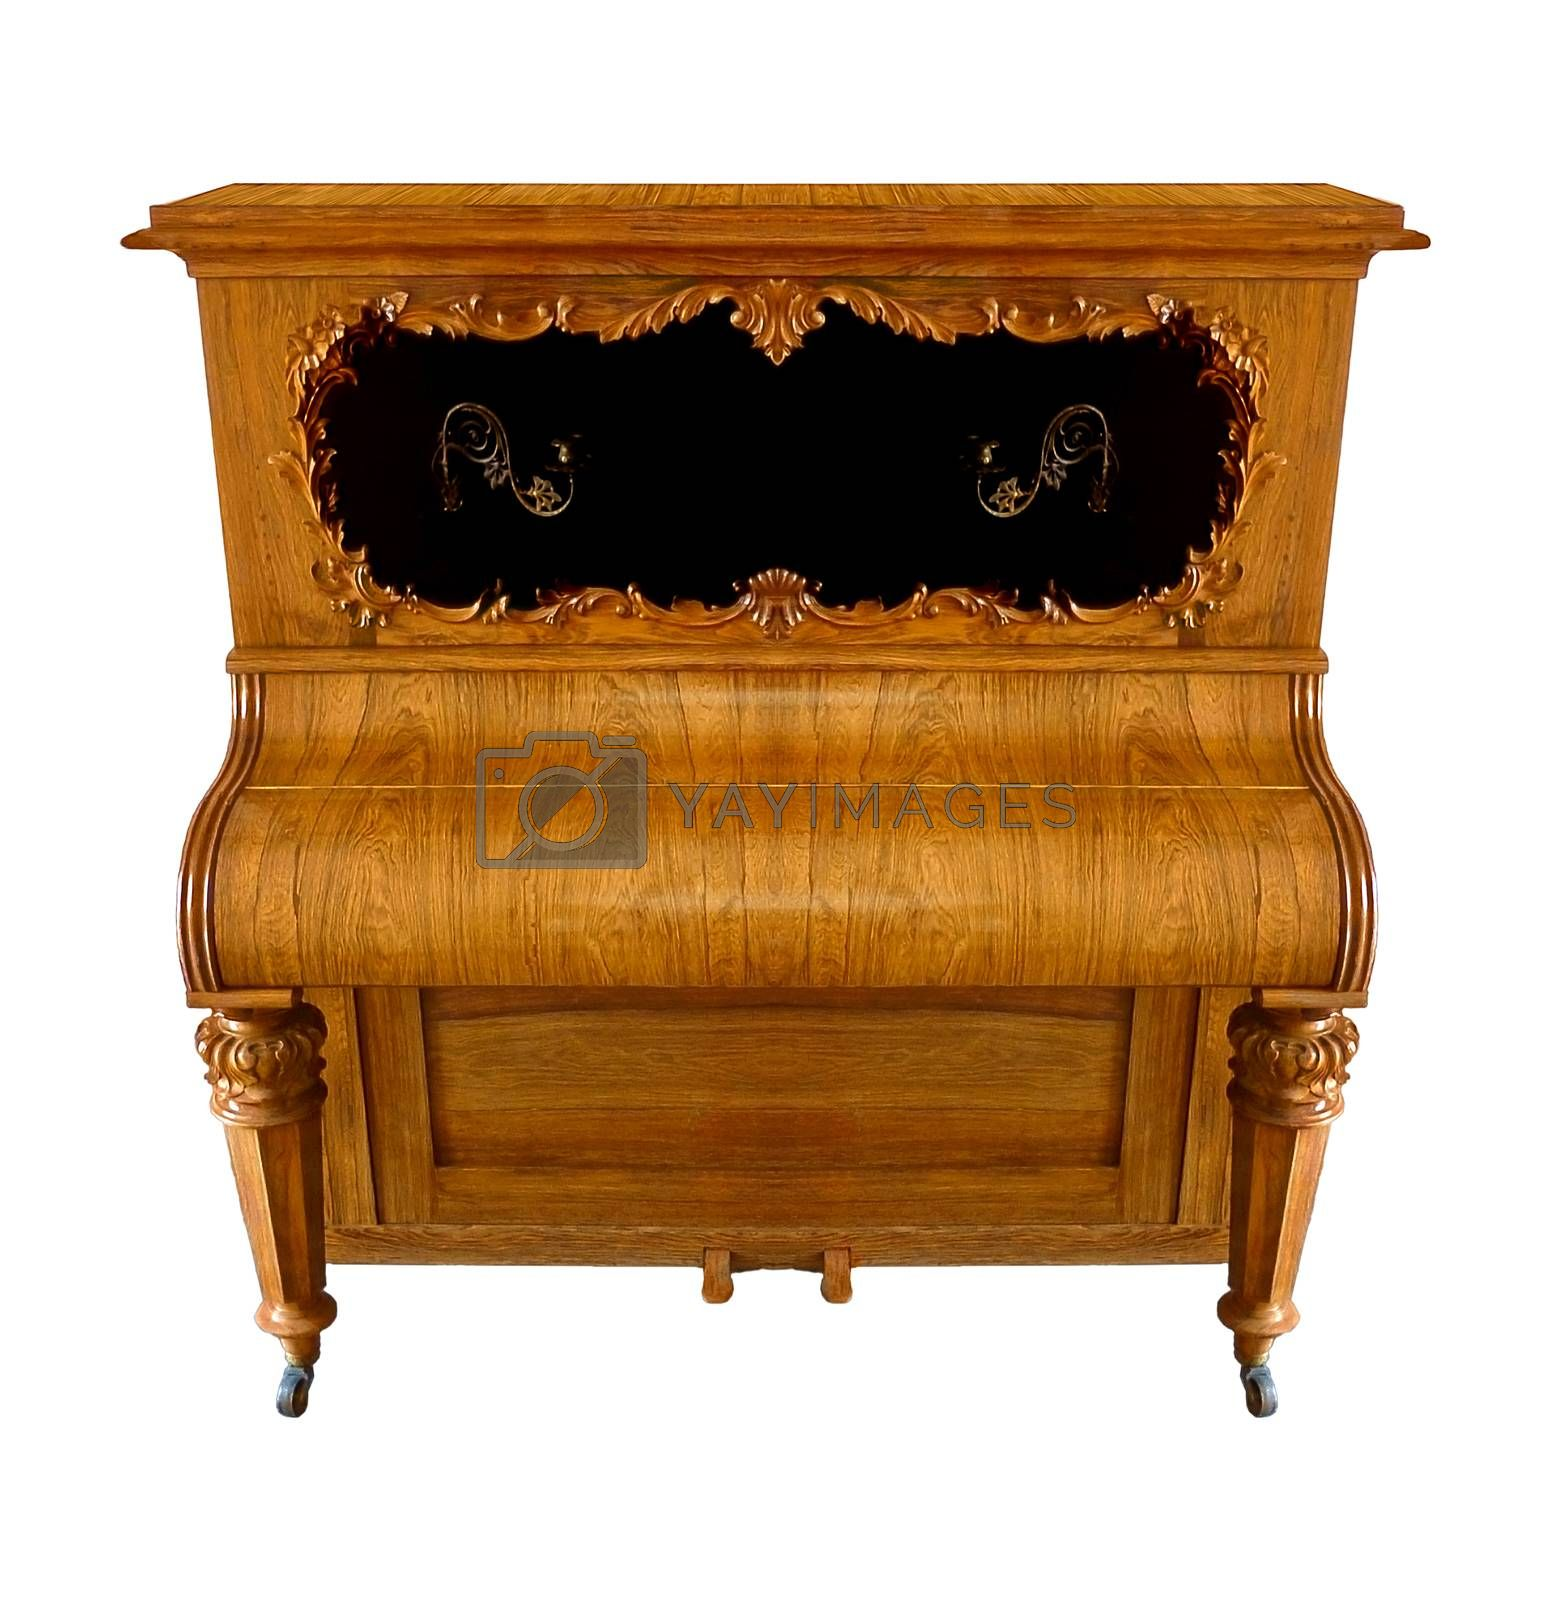 Old Style Little Piano by DanFLCreative